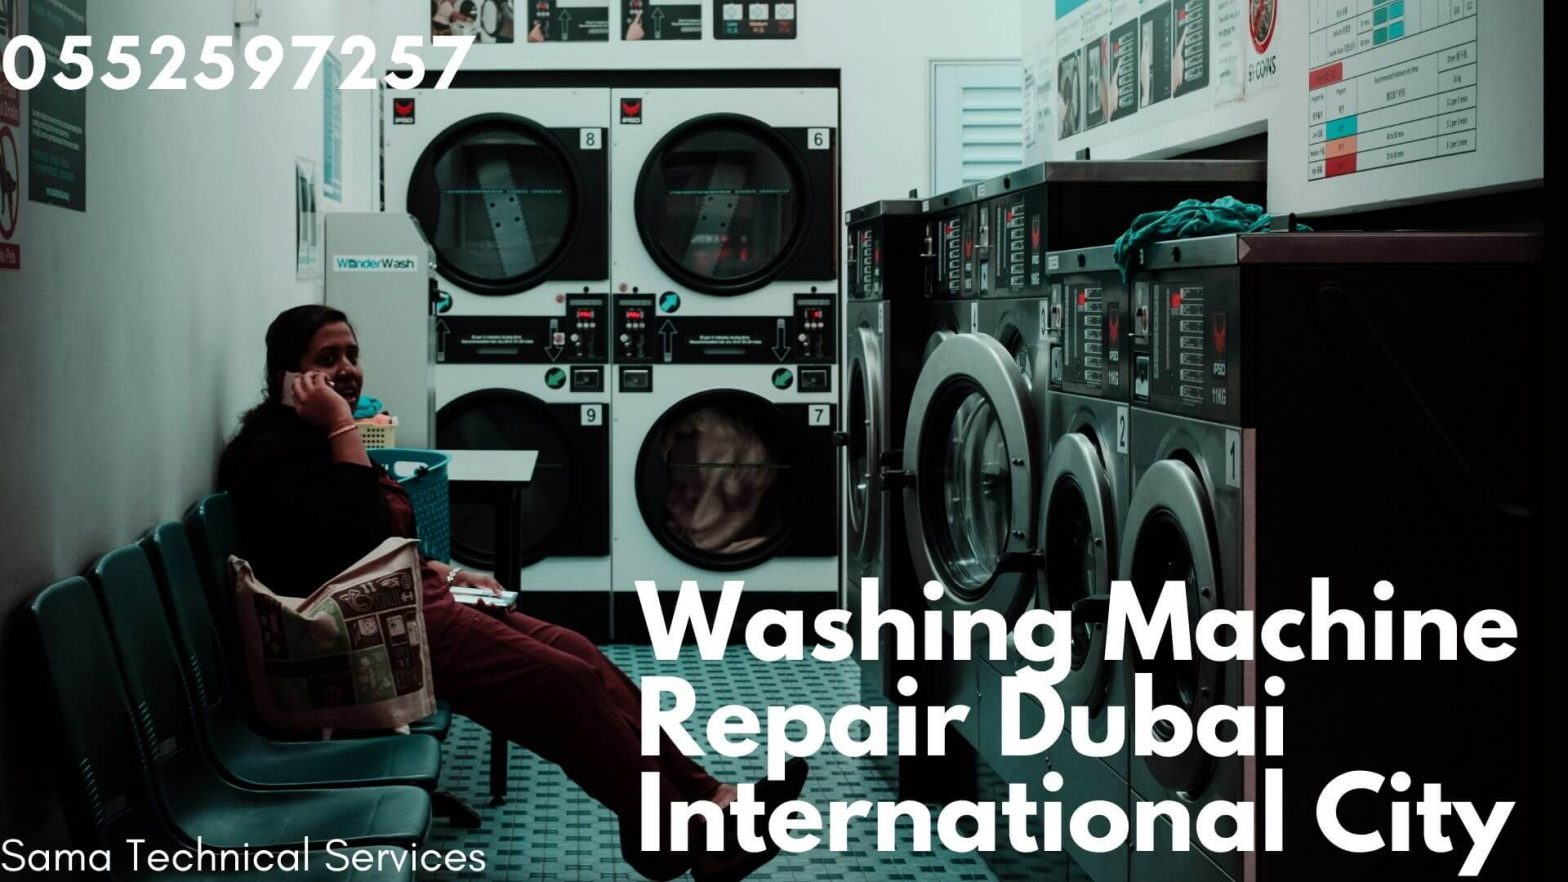 Washing Machine Repair Dubai International City